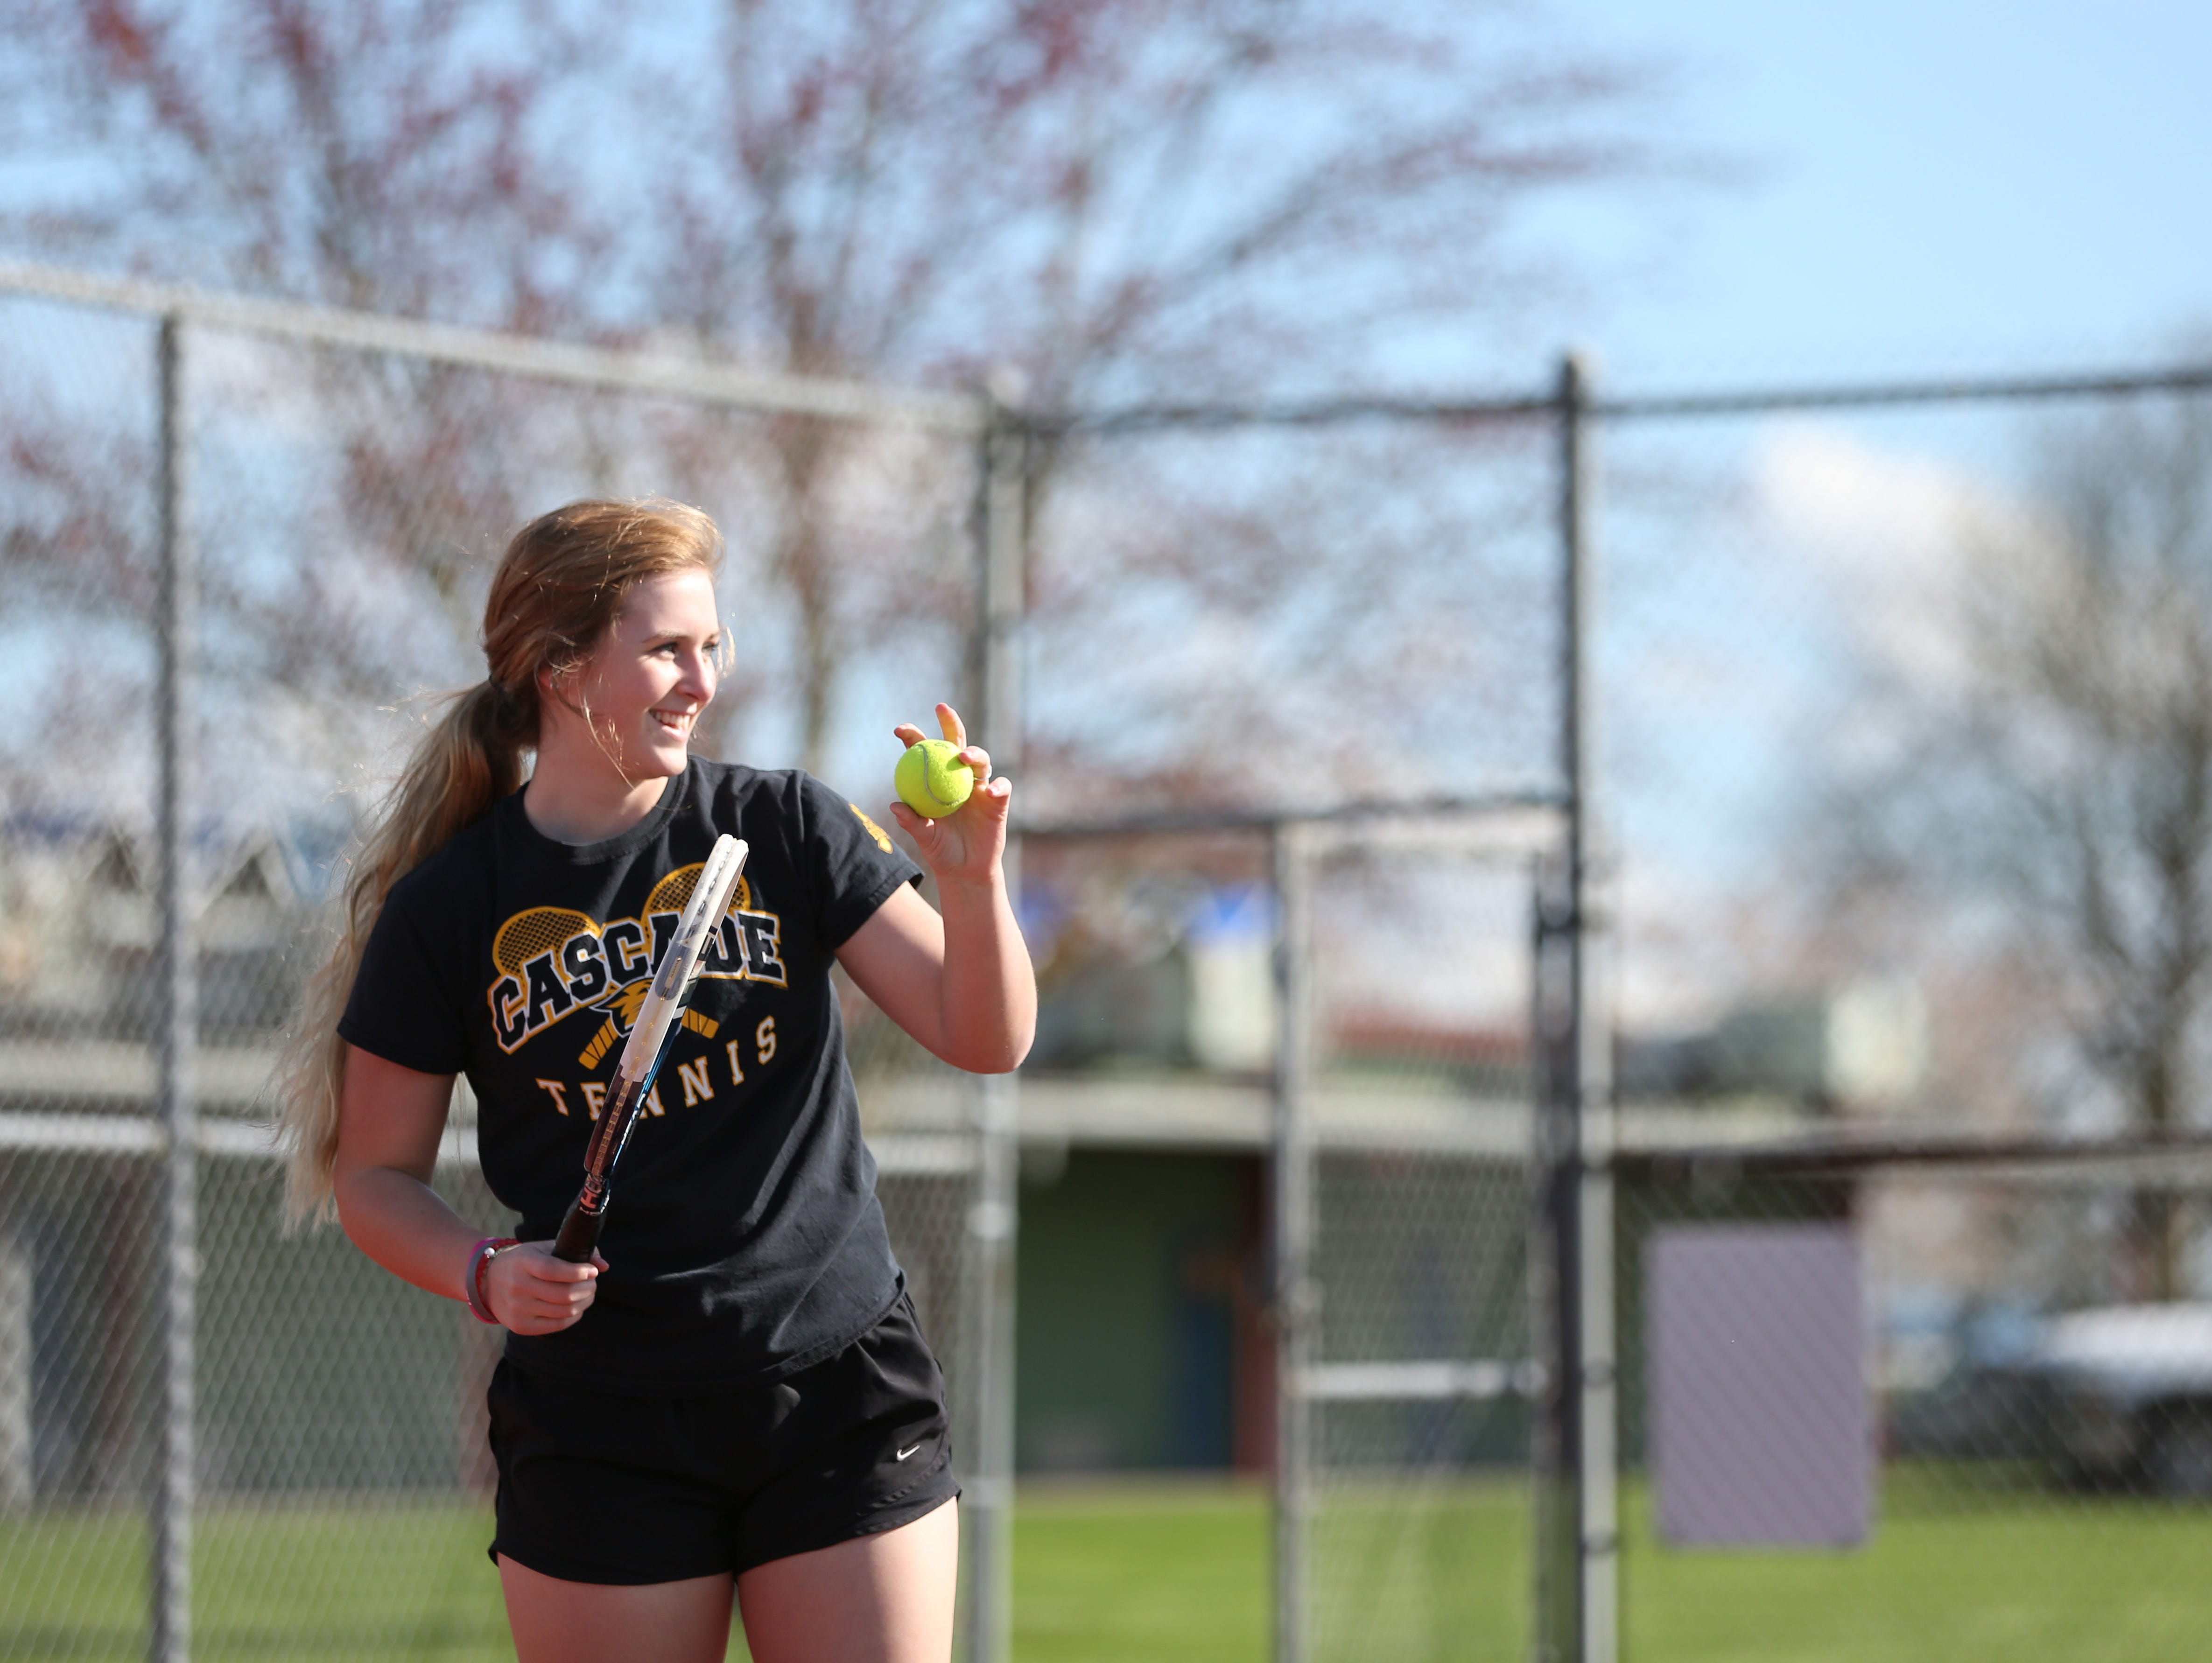 Tori Lewis practices with doubles partner, Jaja Osuna Sola, on Tuesday, March 21, 2017, at Cascade High School in Turner.